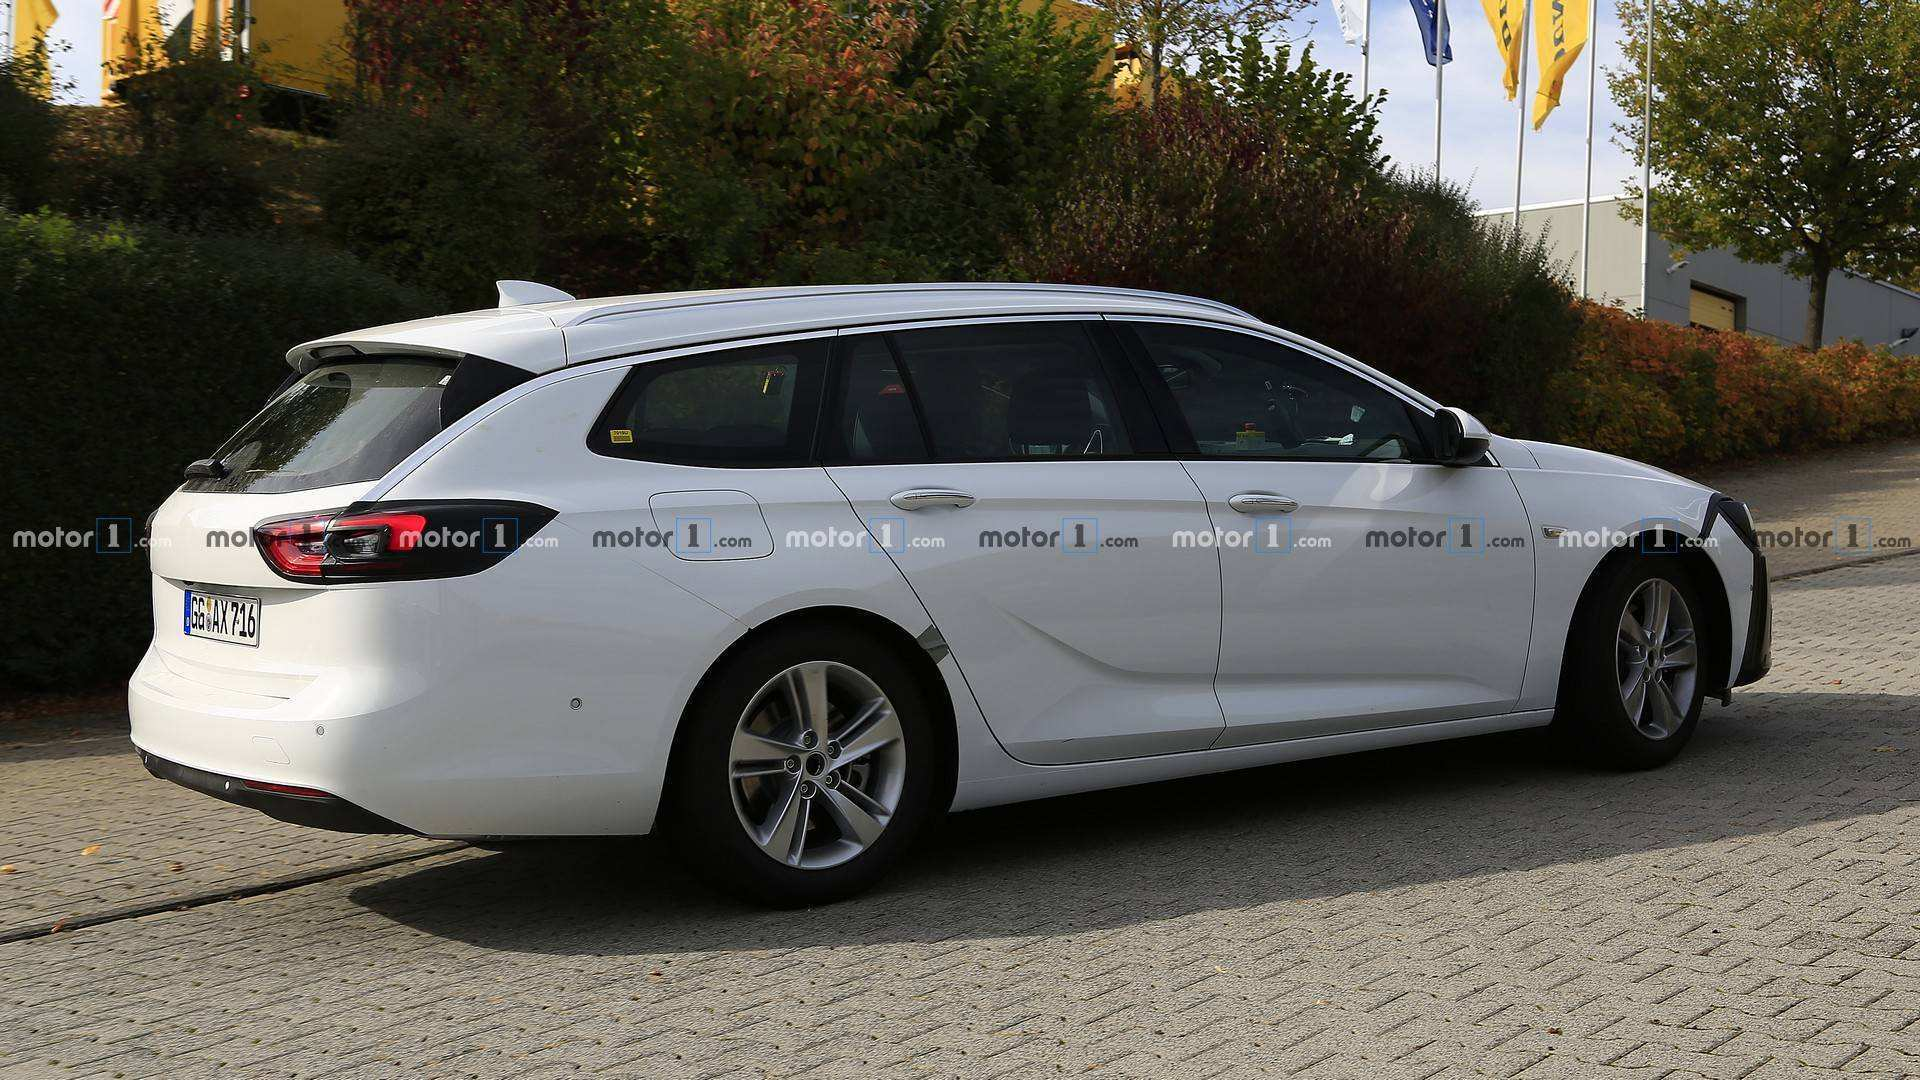 56 Gallery of Opel Insignia 2020 Configurations with Opel Insignia 2020